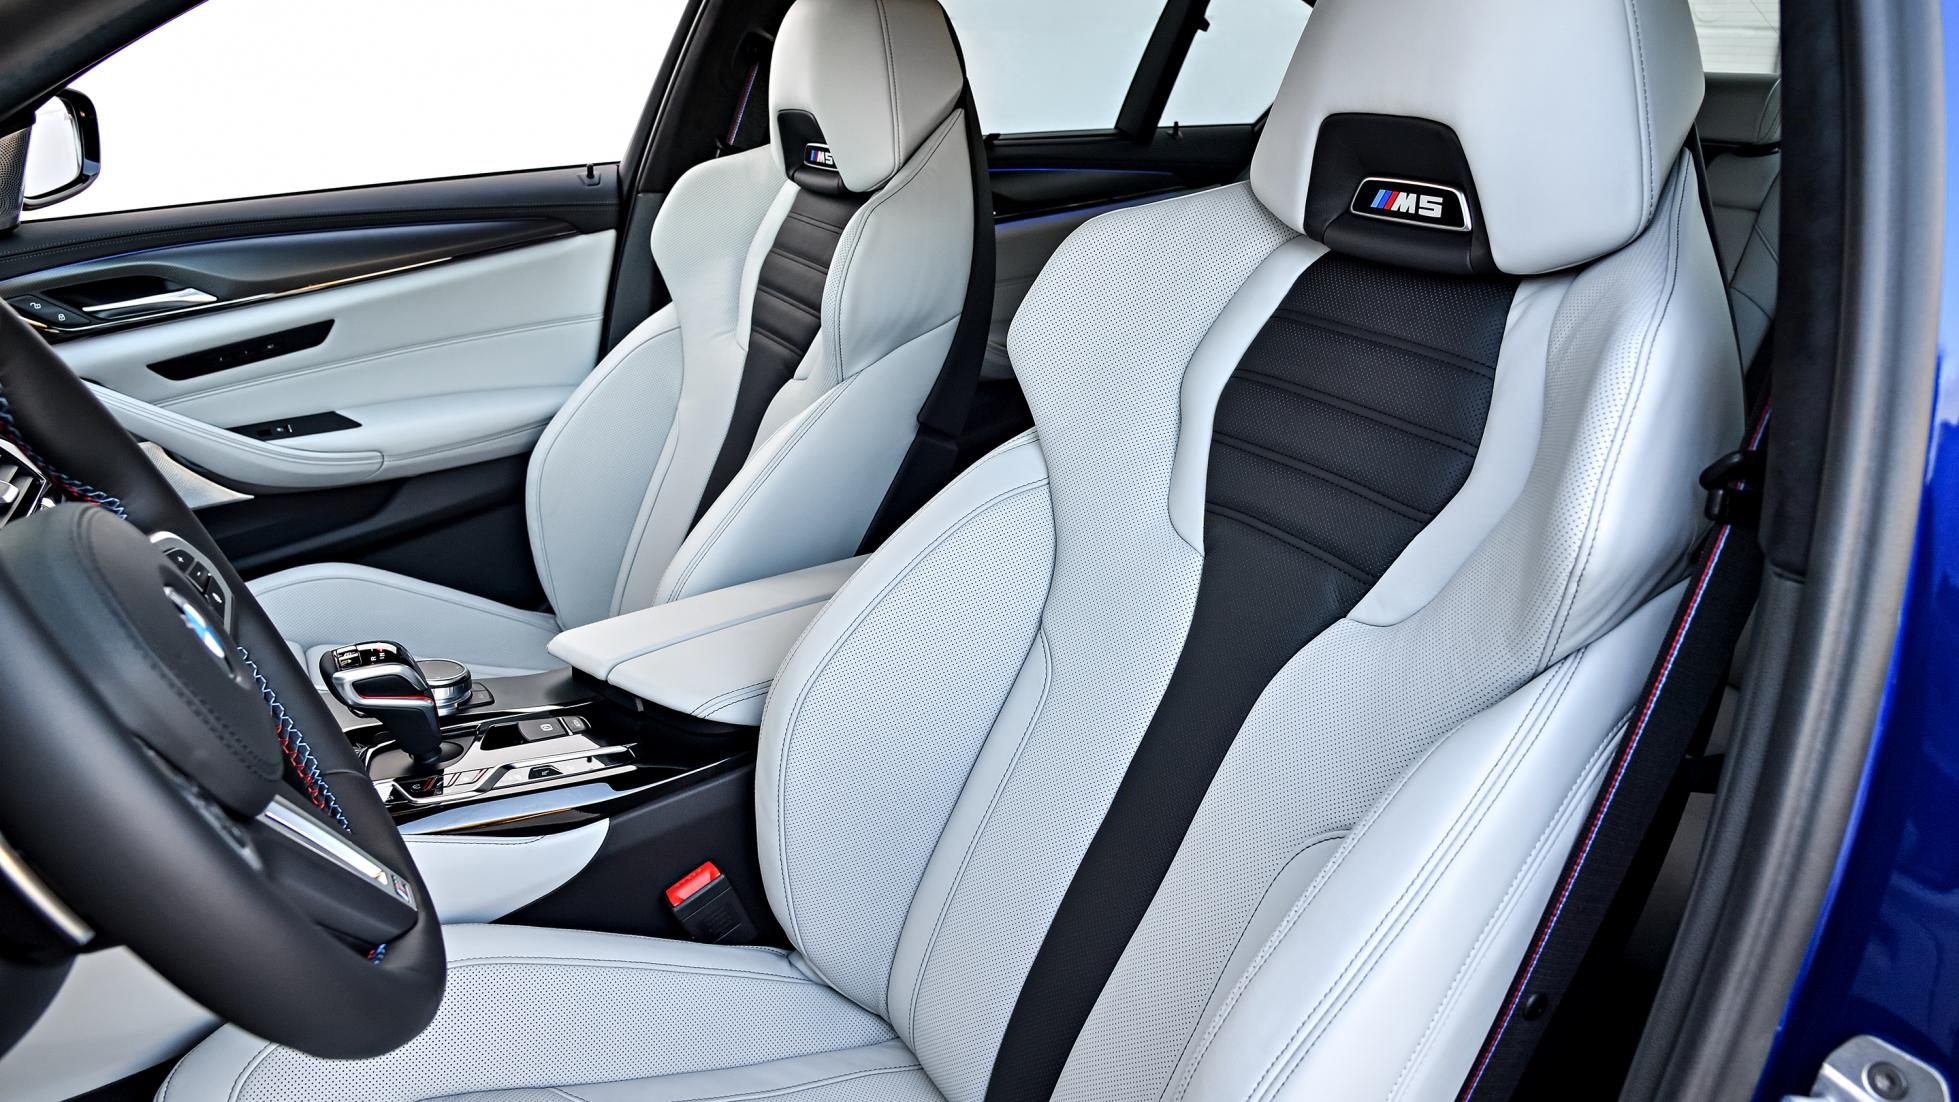 p90287026_highres_the-new-bmw-m5-11-20